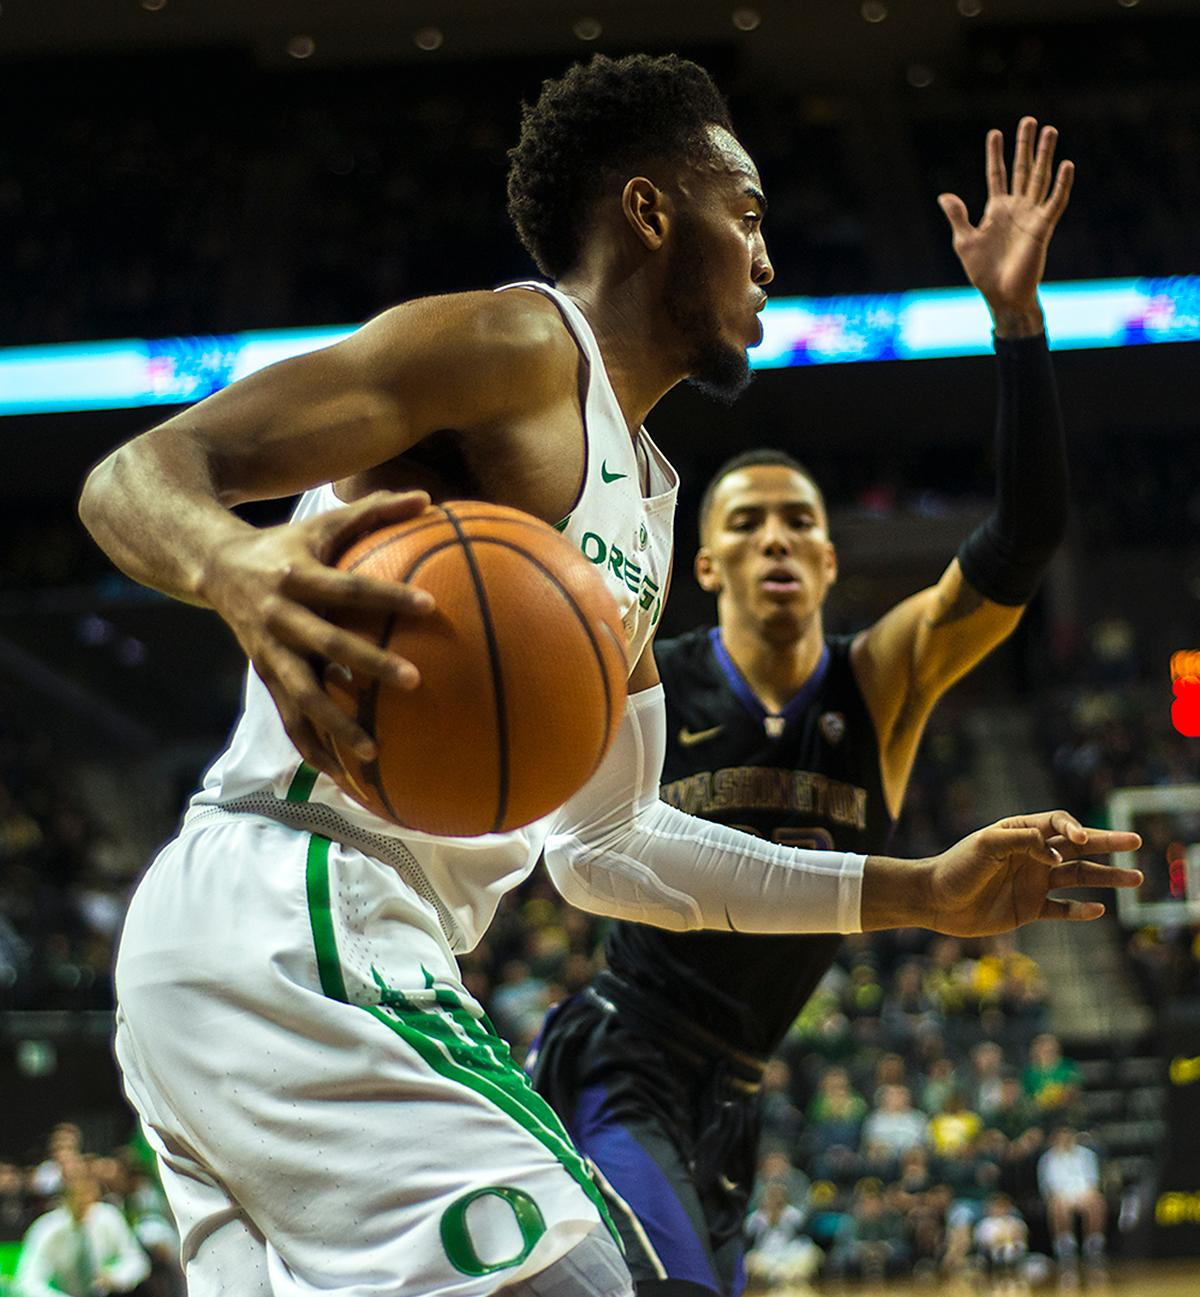 Oregon Ducks forward Troy Brown, Jr., searches for a path around the Washington Huskies defense. The Oregon Ducks defeated the Washington Huskies 65-40 on Thursday night at Matthew Knight Arena. Troy Brown, Junior led Oregon with 21 points to match his career high, and Kenny Wooten set a career best of seven shots blocked. The Ducks now stand 6-5 in the Pac-12 conference play. Photo by Abigail Winn, Oregon News Lab